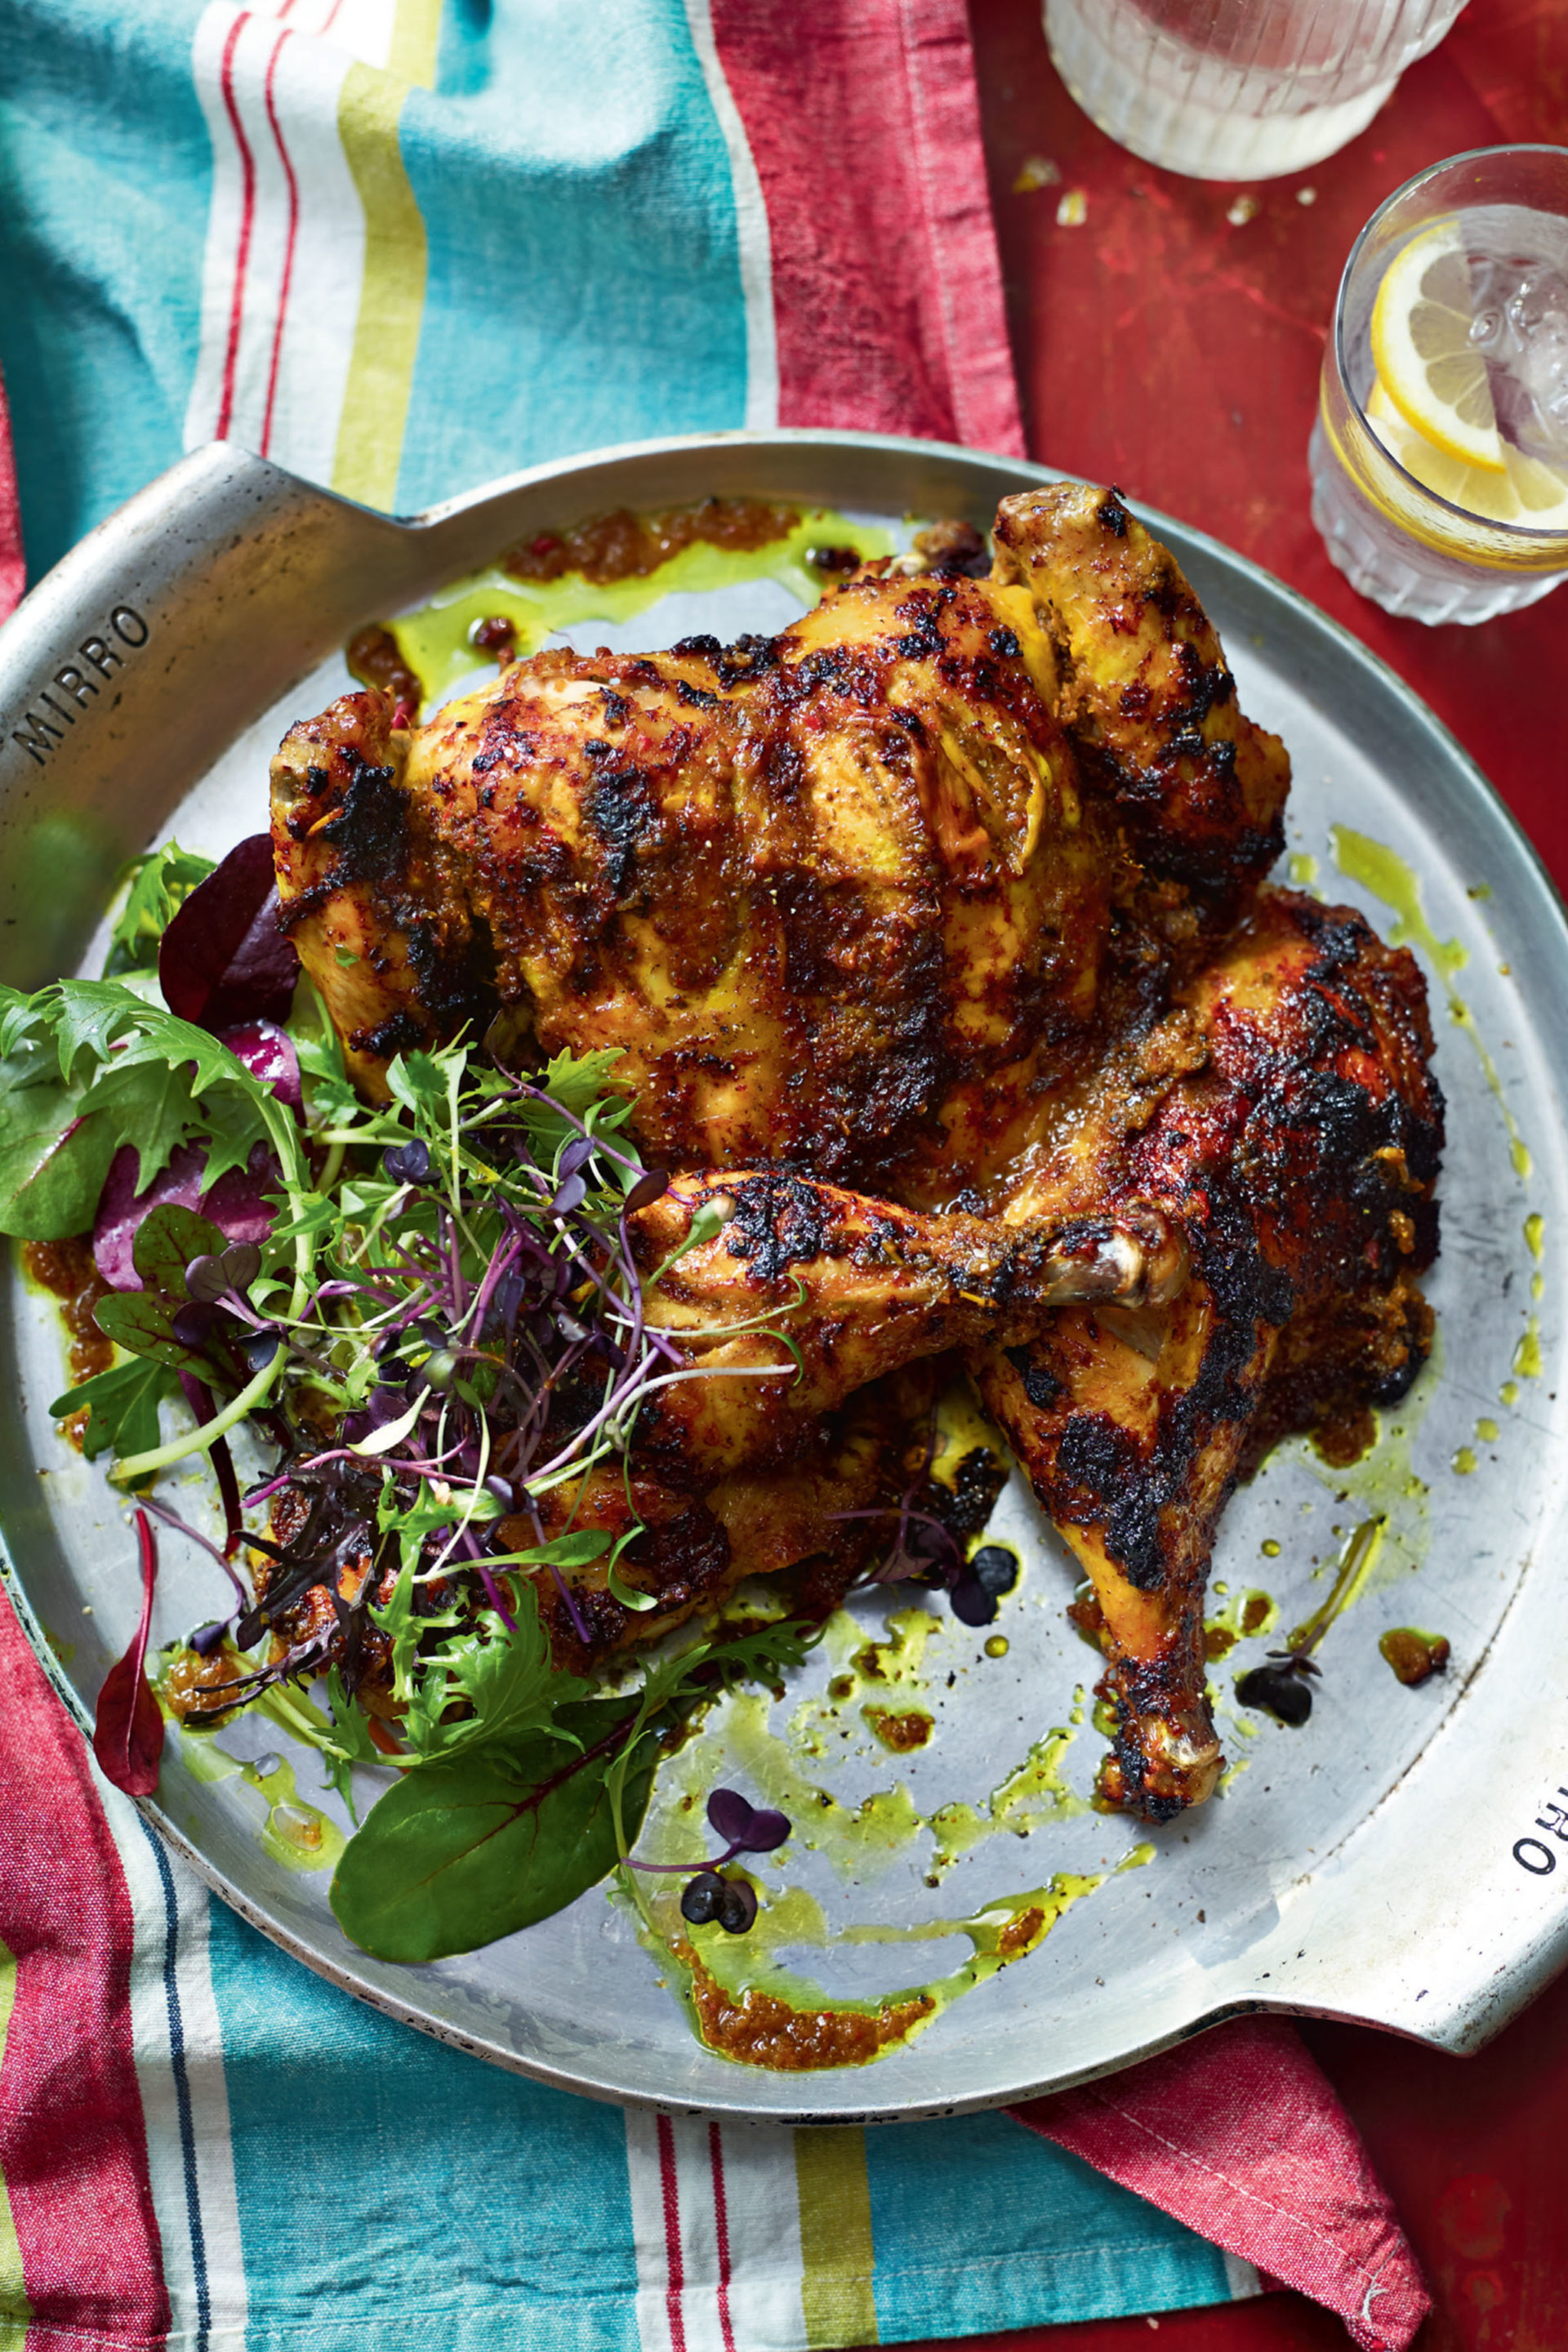 Ainsley's jerk chicken image